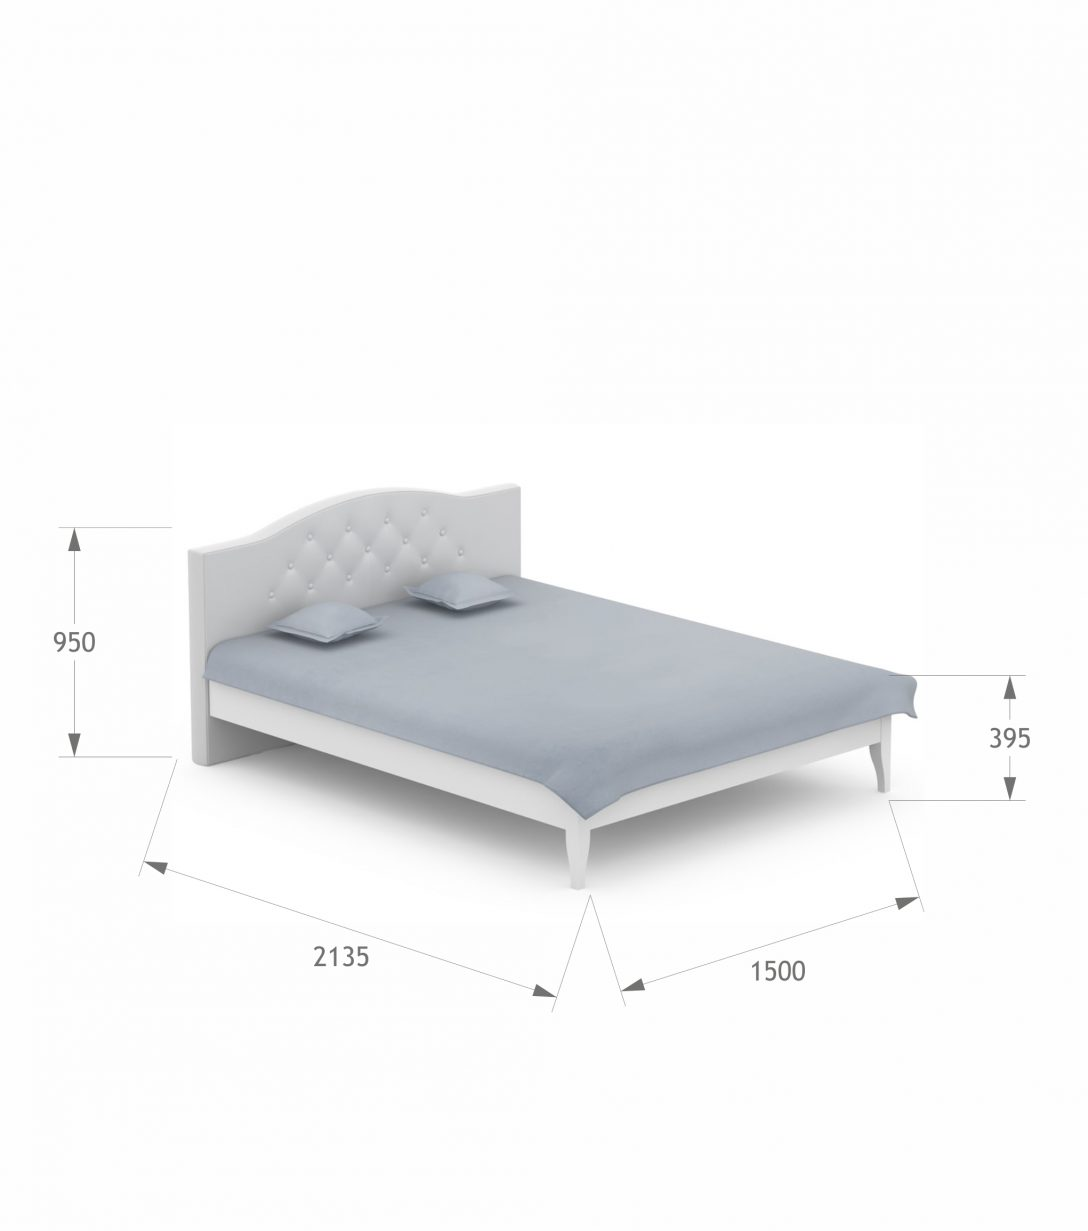 Large Size of Bett 140 200 Simple Grey Meblik Konfigurieren 200x200 Mit Bettkasten 140x220 Antik 160x200 Komplett Luxus Betten Chesterfield Komforthöhe Massivholz 180x200 Bett Bett 1 40